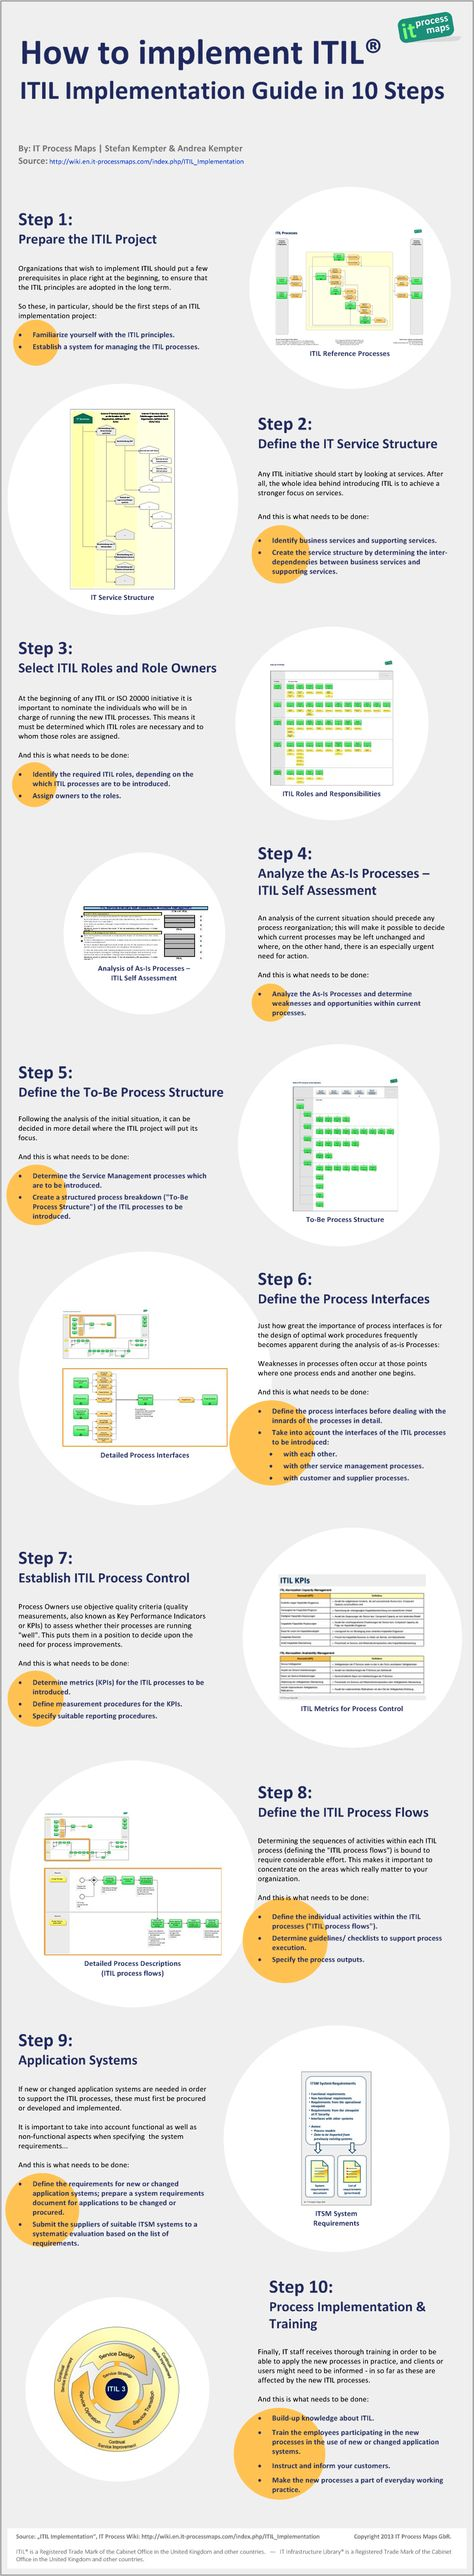 13 best itil fundamentos v3 images on pinterest project 13 best itil fundamentos v3 images on pinterest project management overhead press and computer science 1betcityfo Choice Image